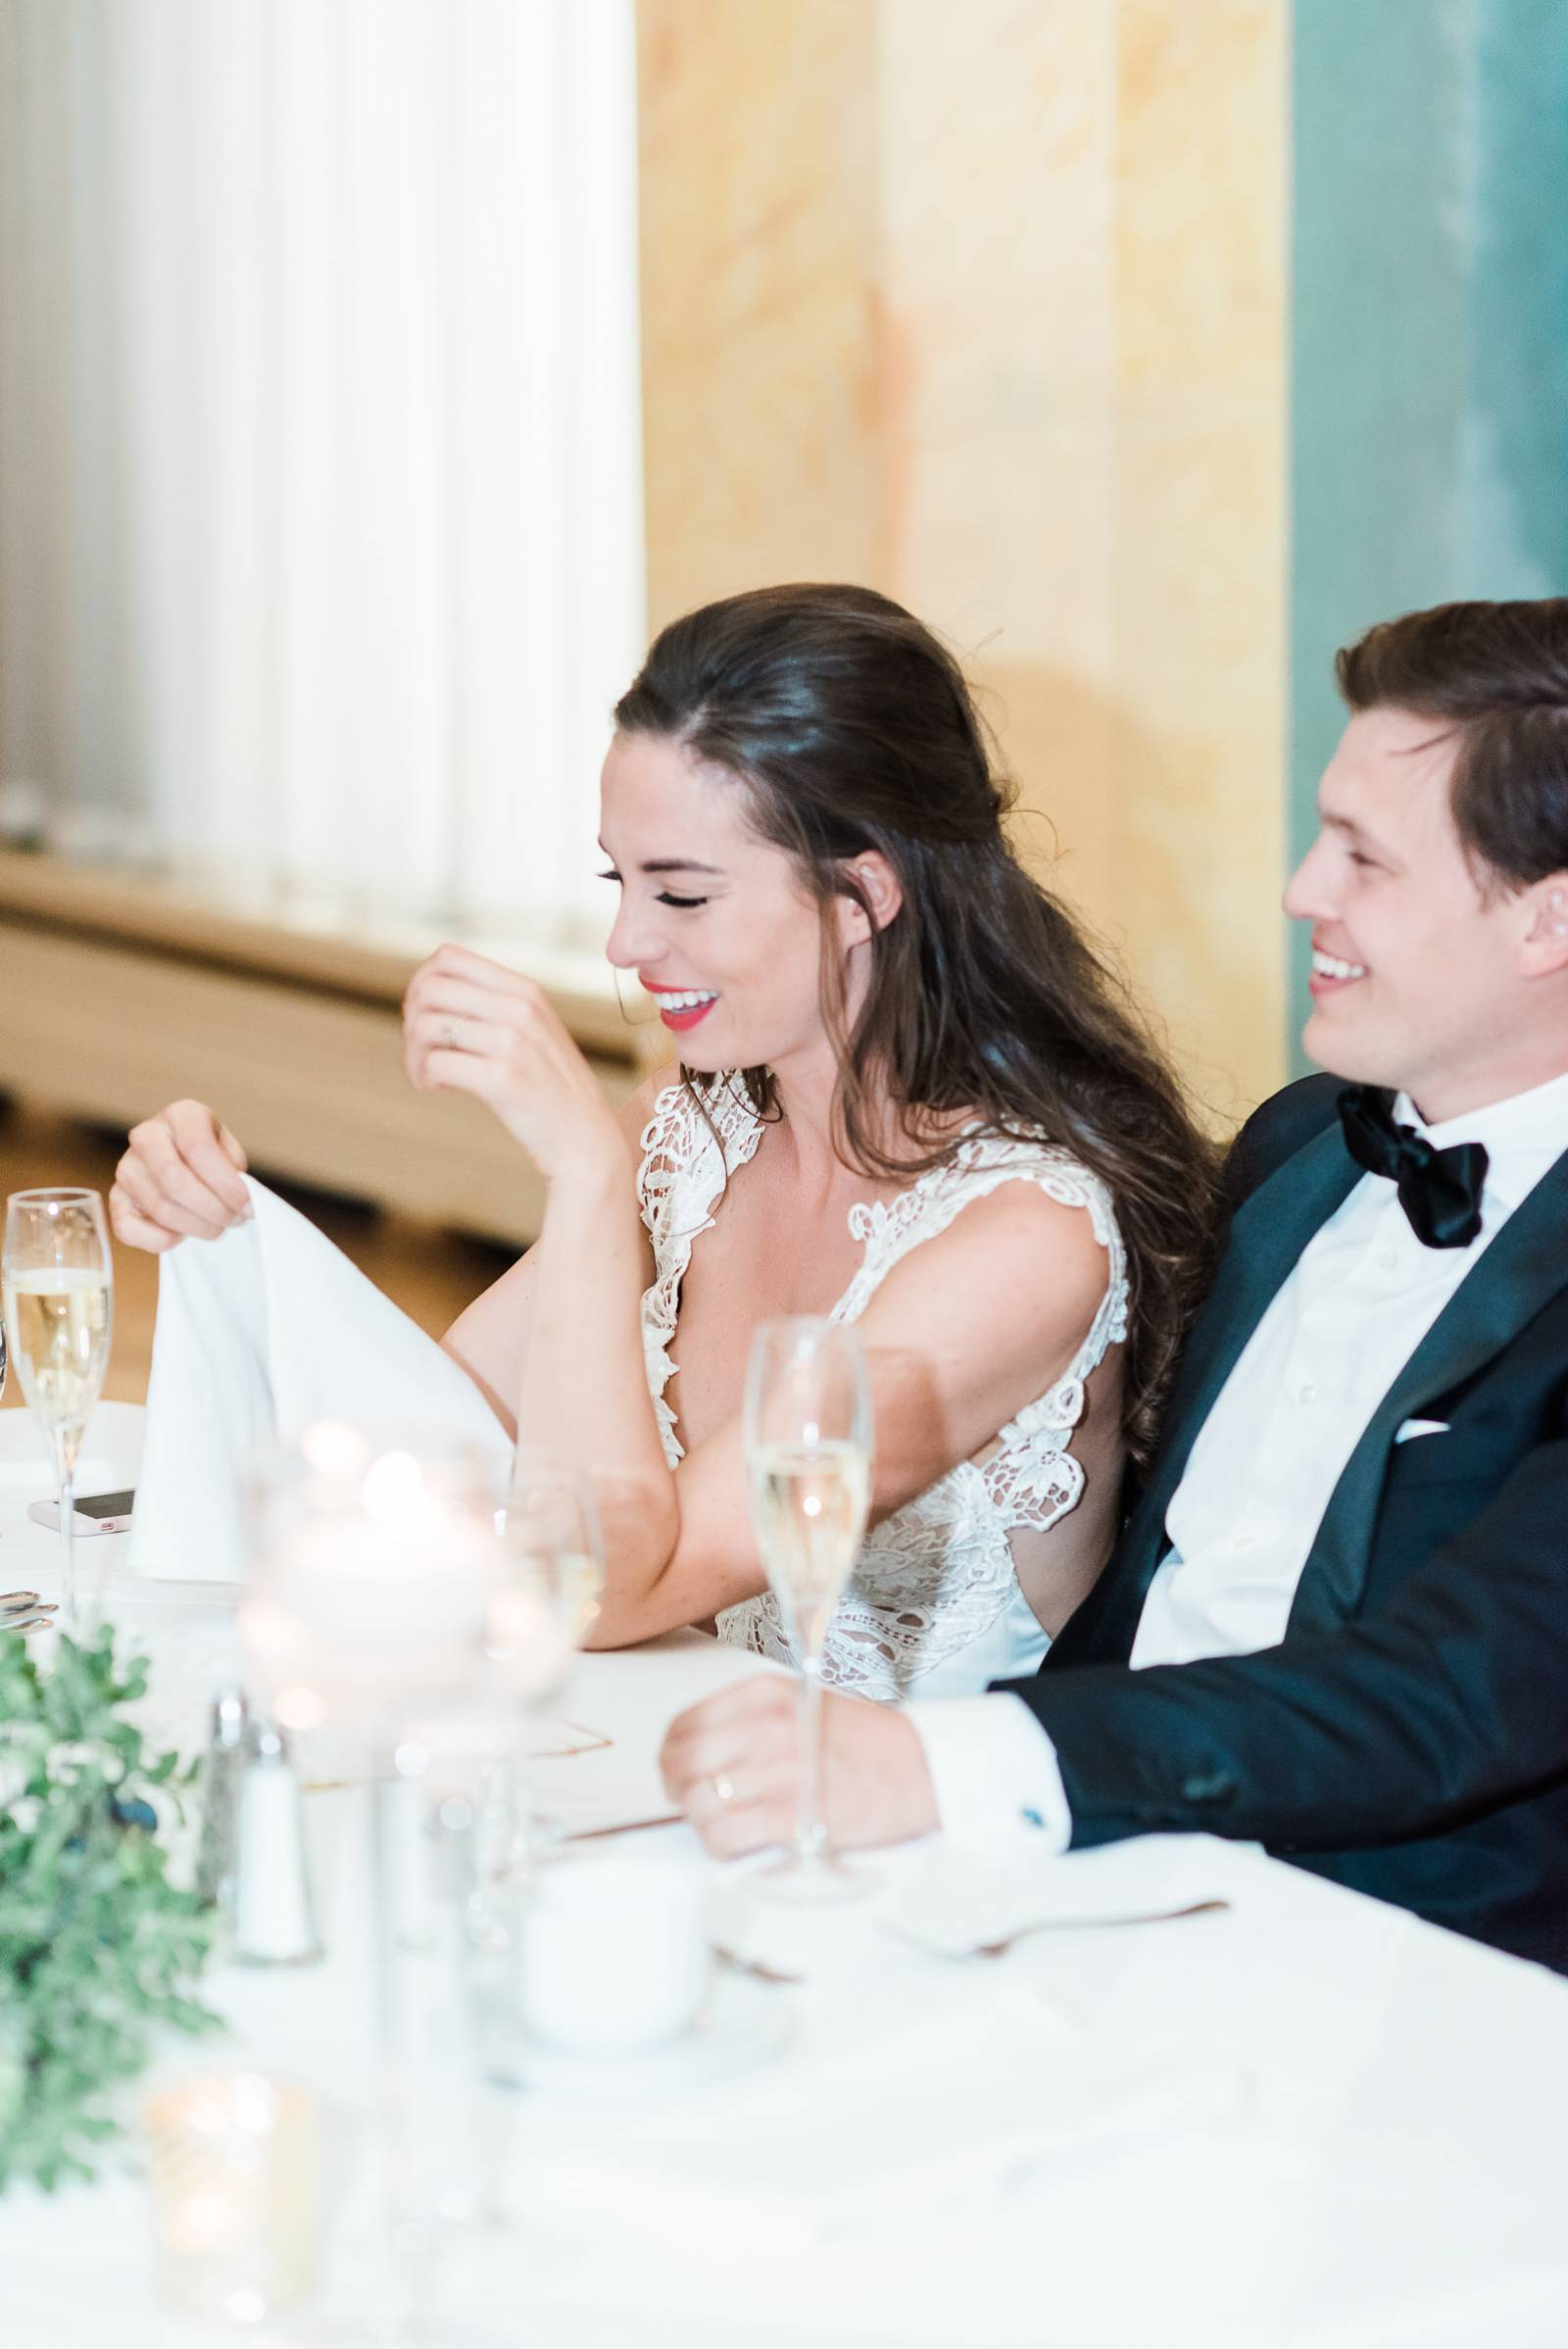 A Bride and groom laughing at their guests toasts at their reception held at the Fairmont Banff Spri